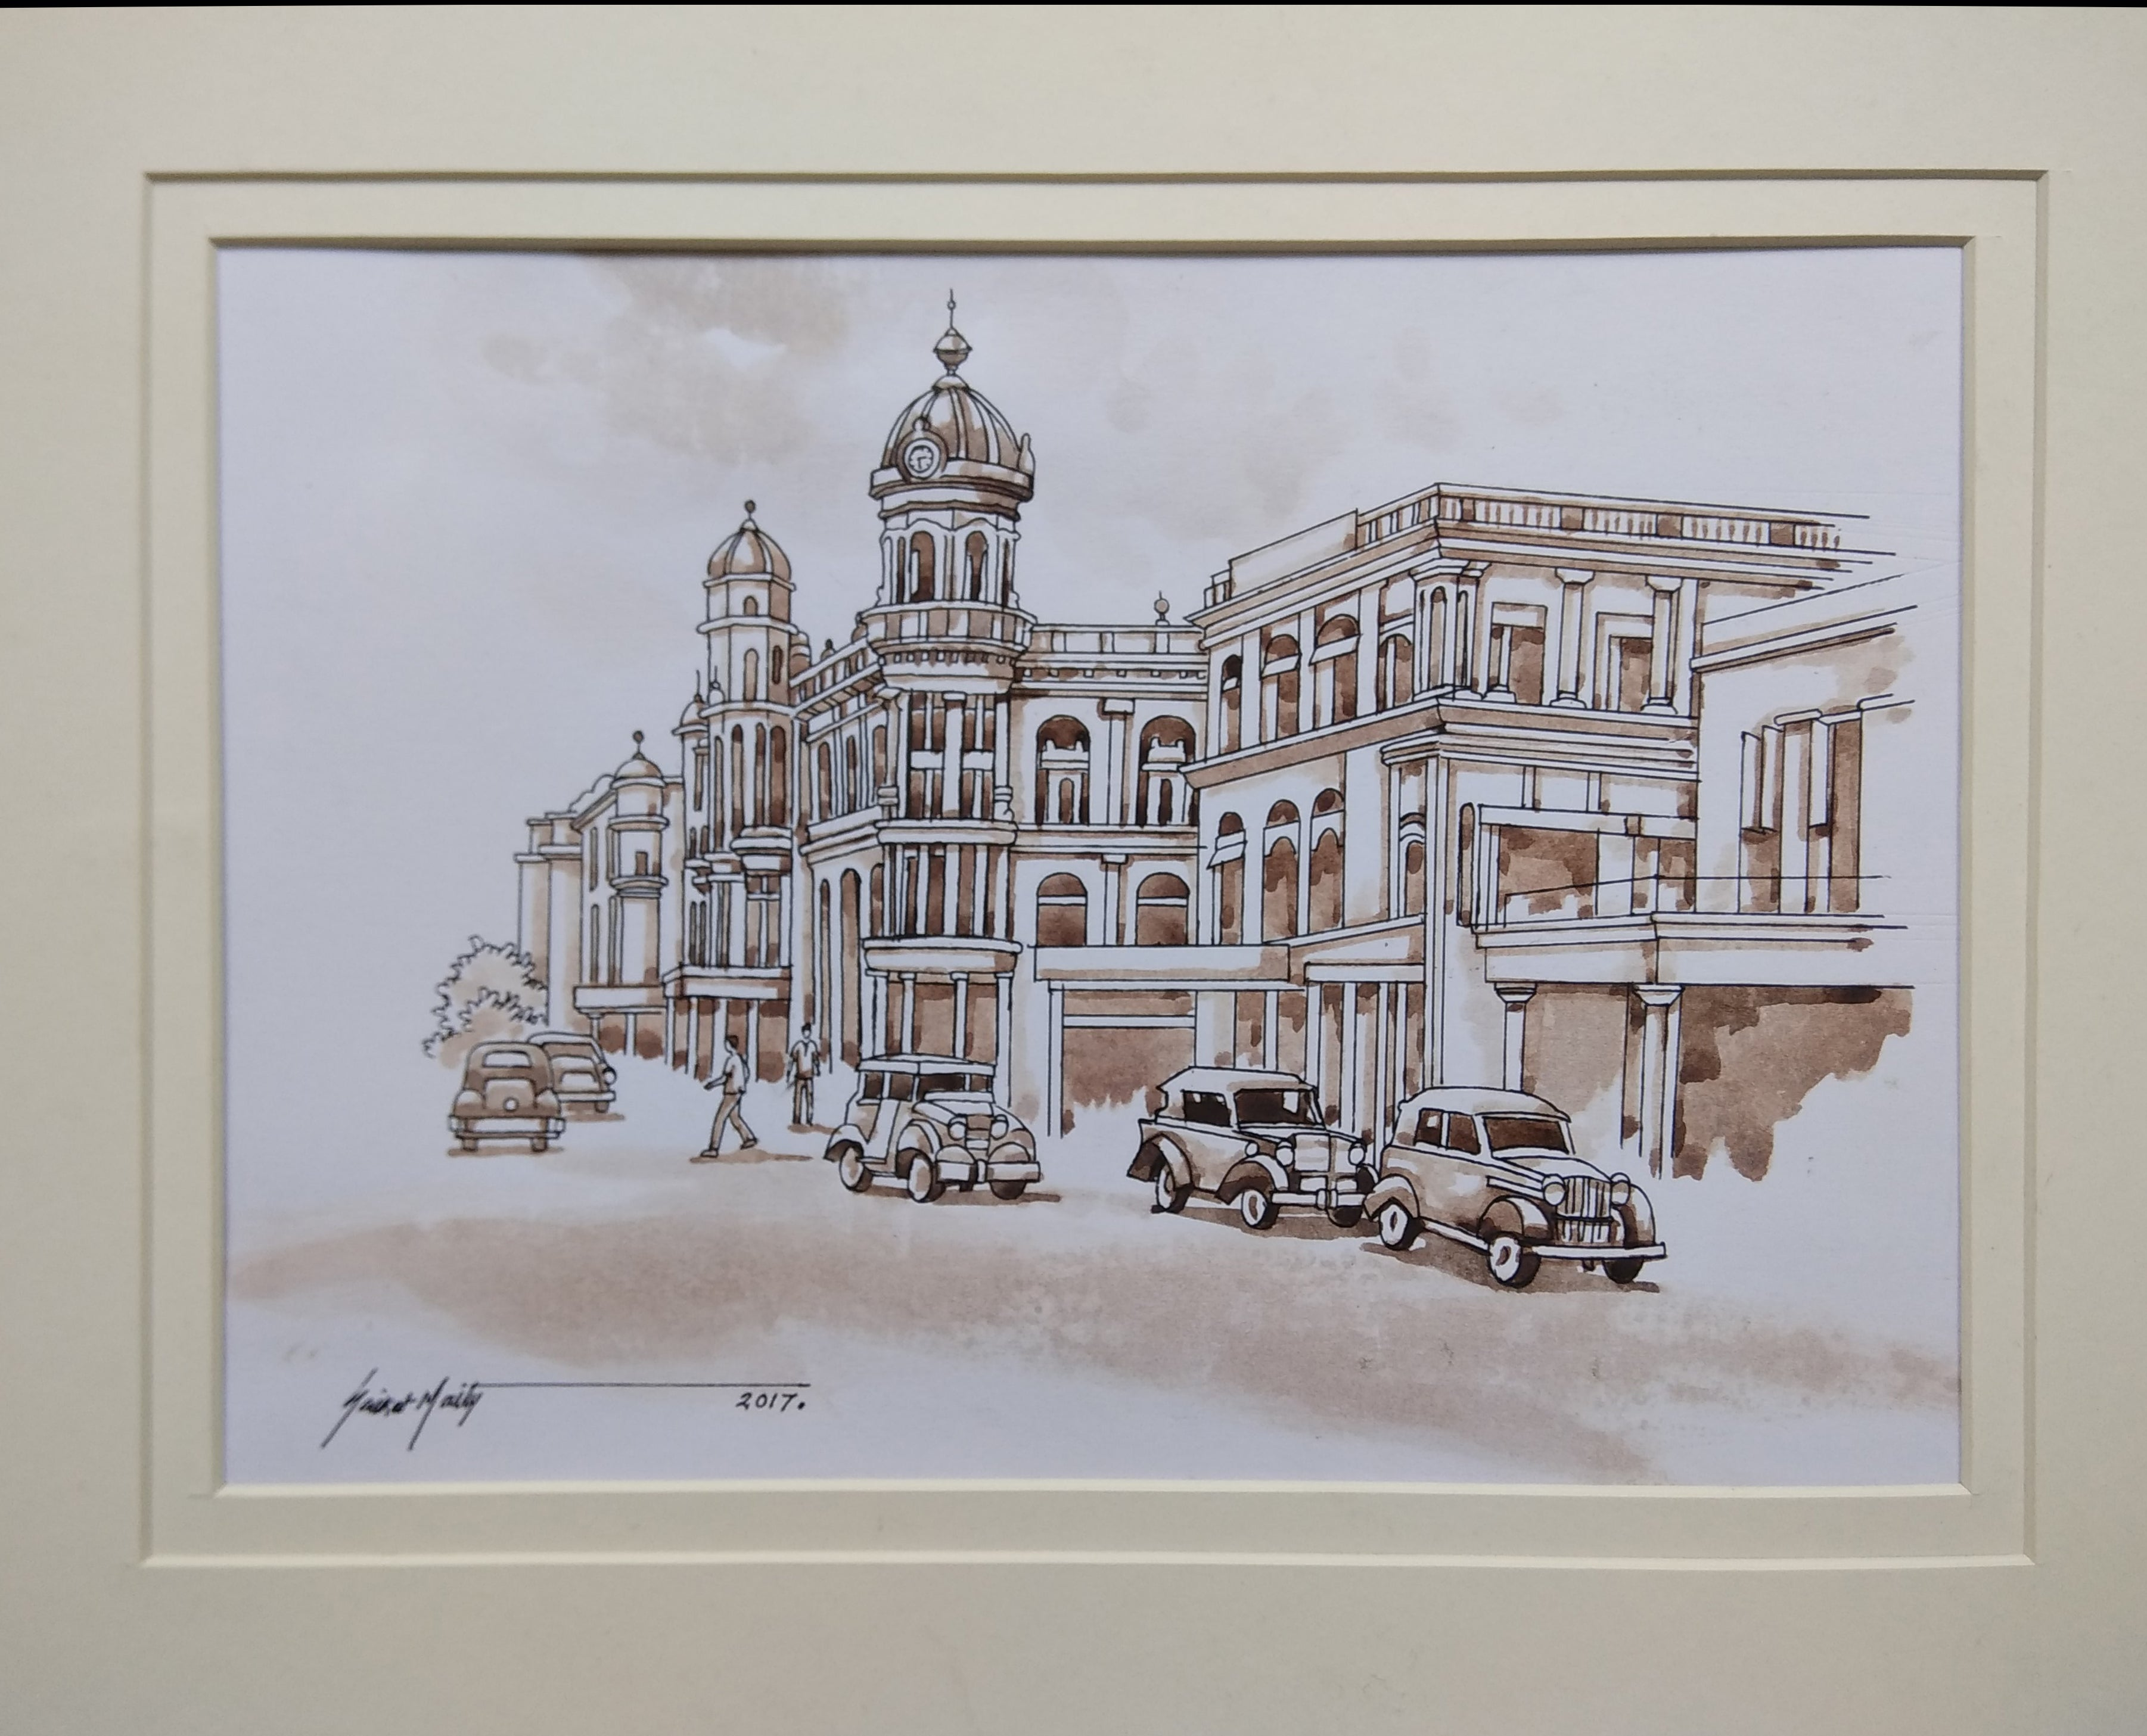 Old kolkata painting heritage building watercolour by indian artist in stock